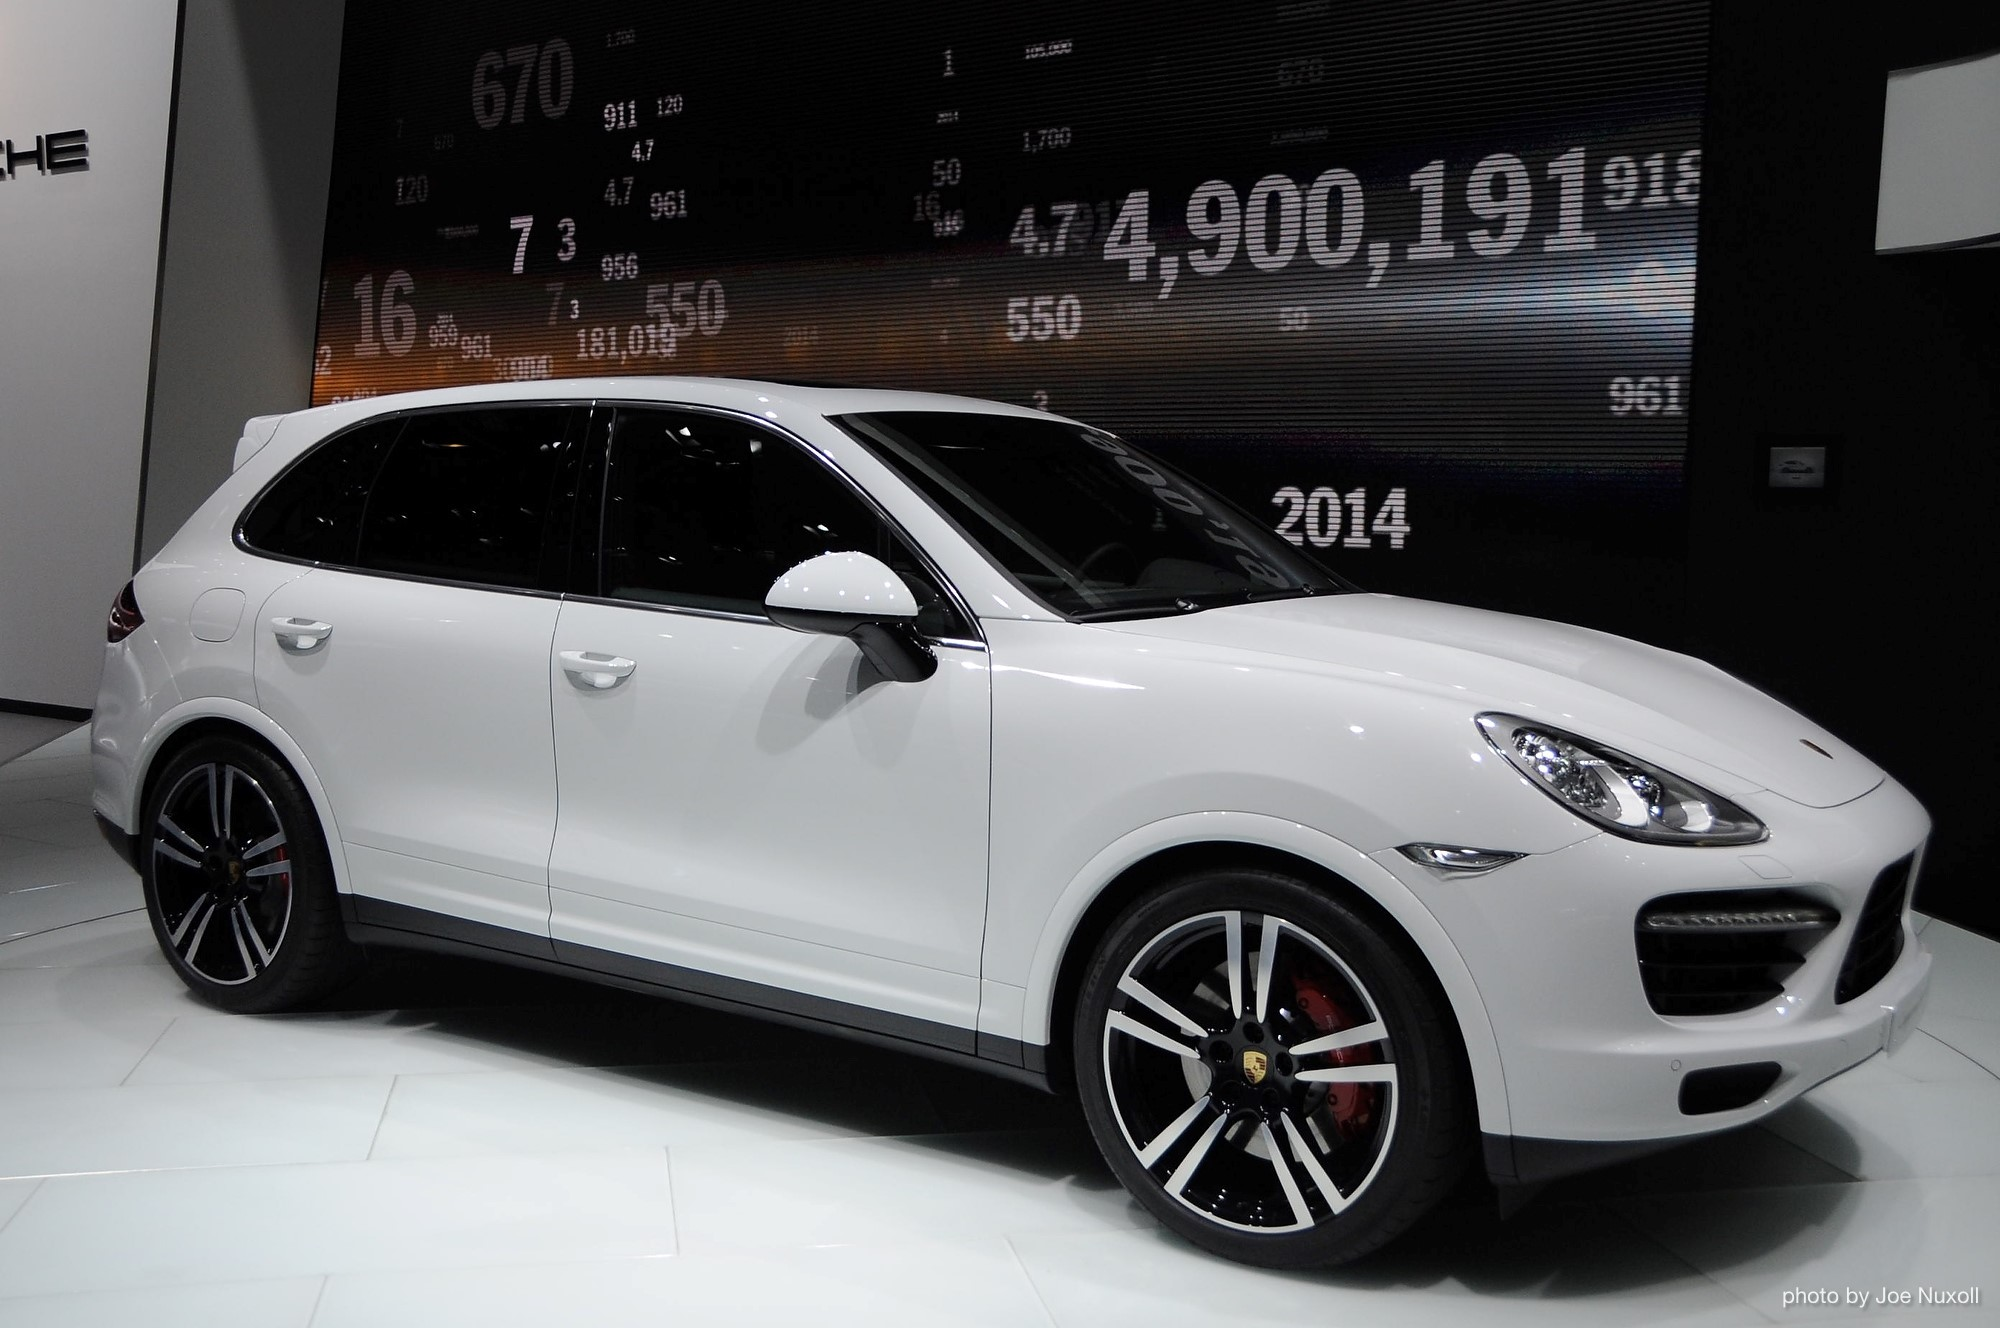 Bmw Of Fresno >> 2014 Porsche Cayenne Review, Ratings, Specs, Prices, and Photos - The Car Connection